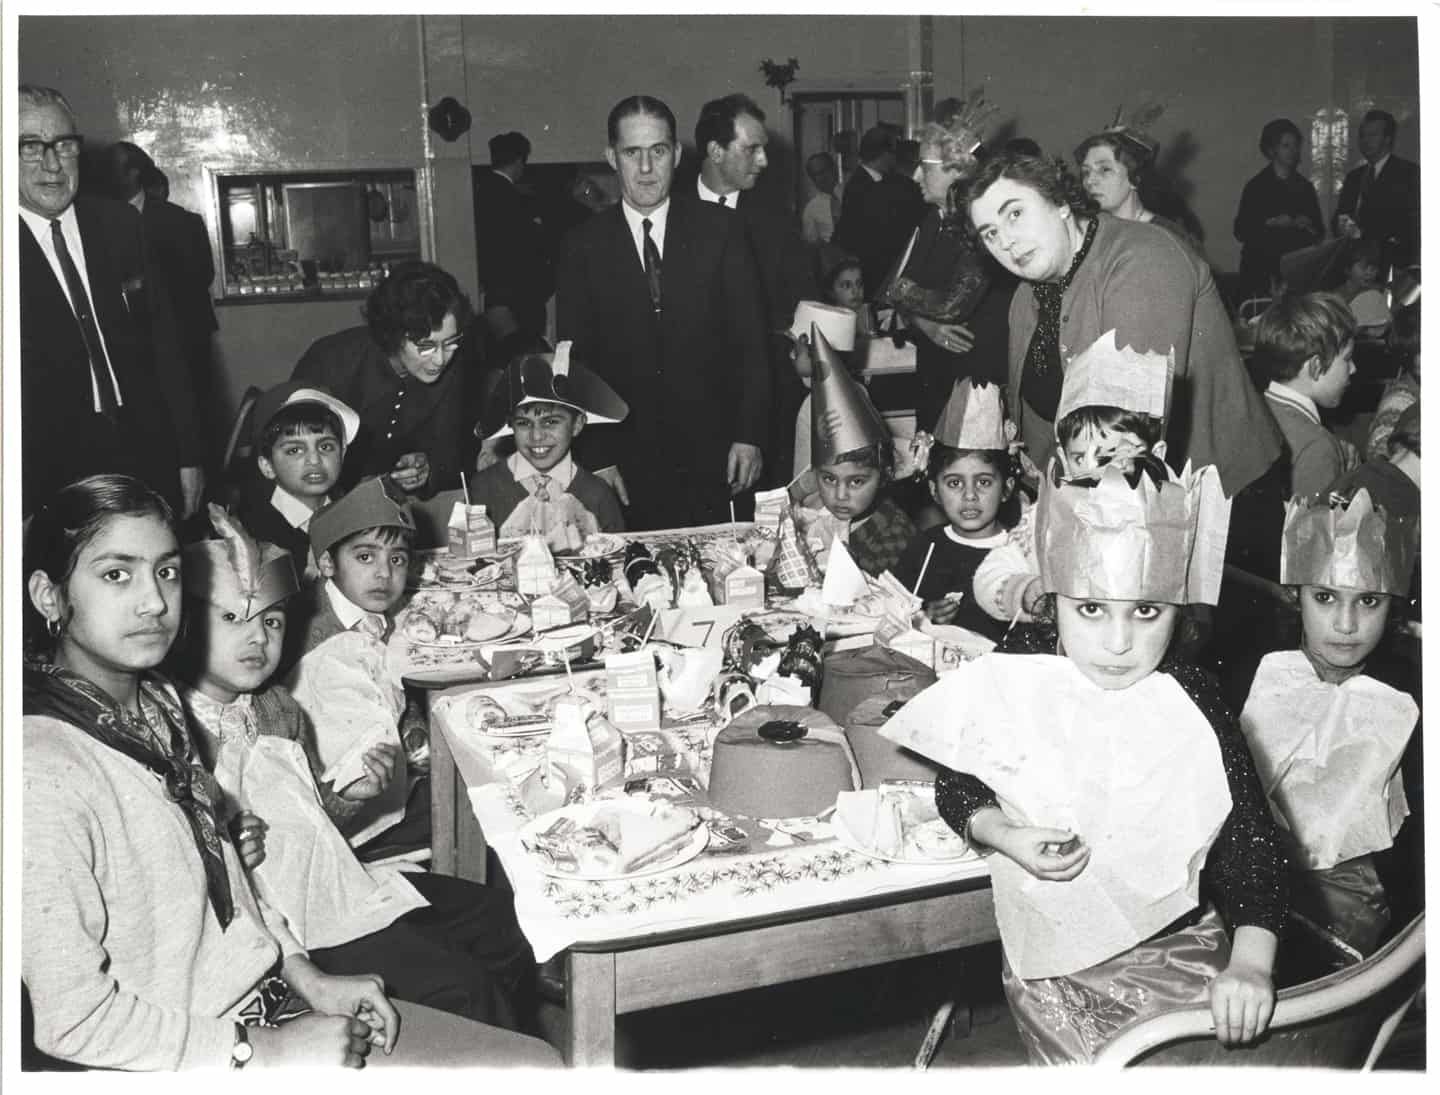 Coneygre Foundry Social Club's annual children's Christmas party for the children of foundry  employees, Dudley c. 1965.  The photographs were photographed by Frank Power, and collated by Stanley Morris (pictured far left) Stanley Morris started working at Coneygre Foundry in 1948 as a Production Controller.  In 1950 he became involved with the Foundry Sports Social Committee and later became the Vice-Chairman. The photos clearly show the children of foundry workers from South Asian Heritage. Amongst the volume of photographs I found depicting this event not a single image showed a picture of the parents of the children from the children.